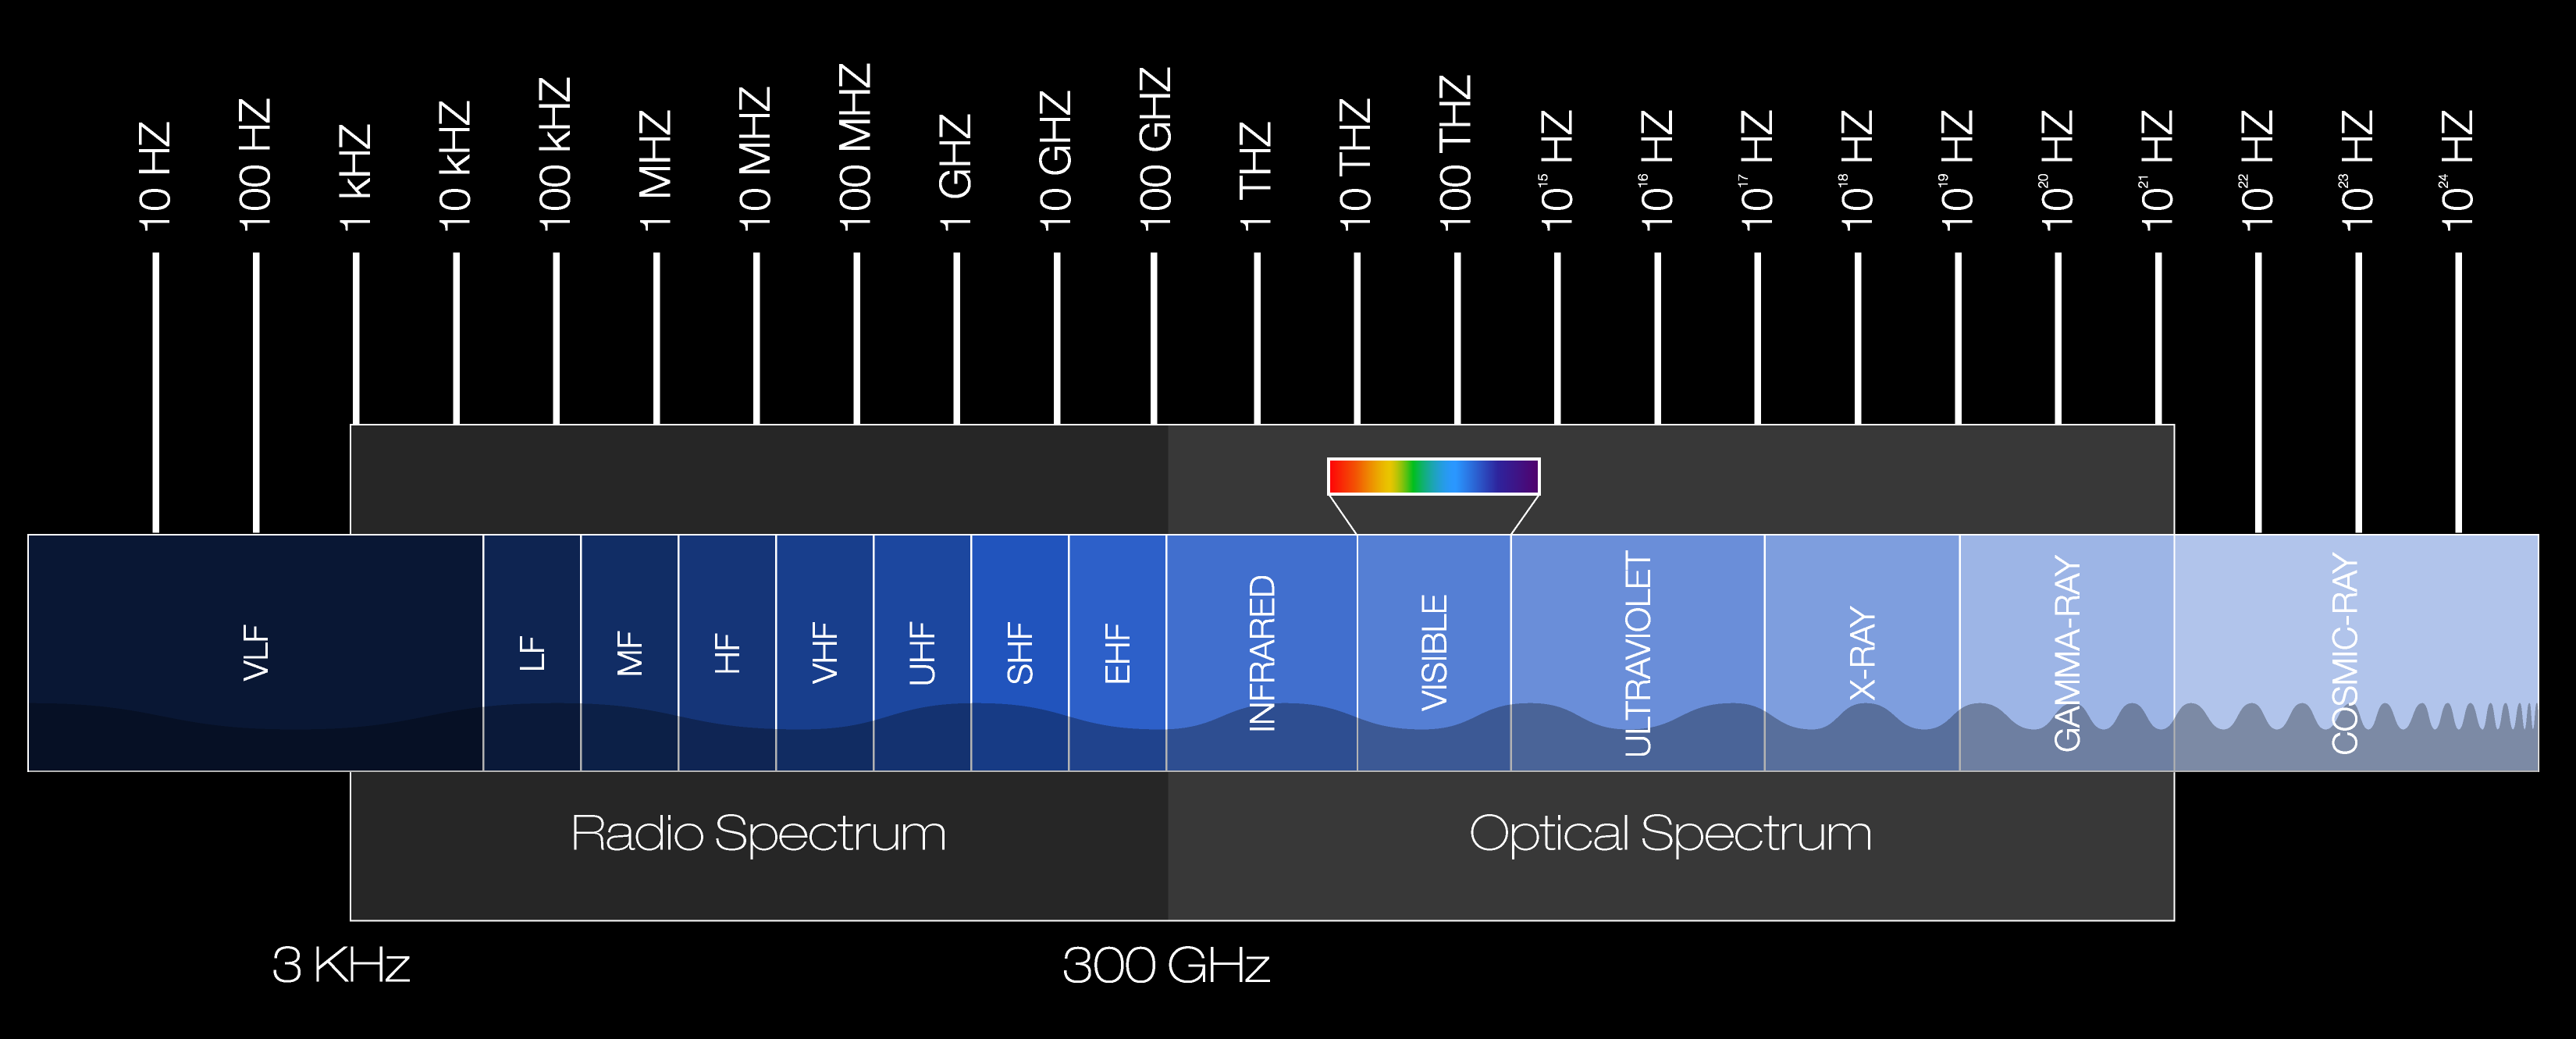 What Are The Spectrum Band Designators And Bandwidths